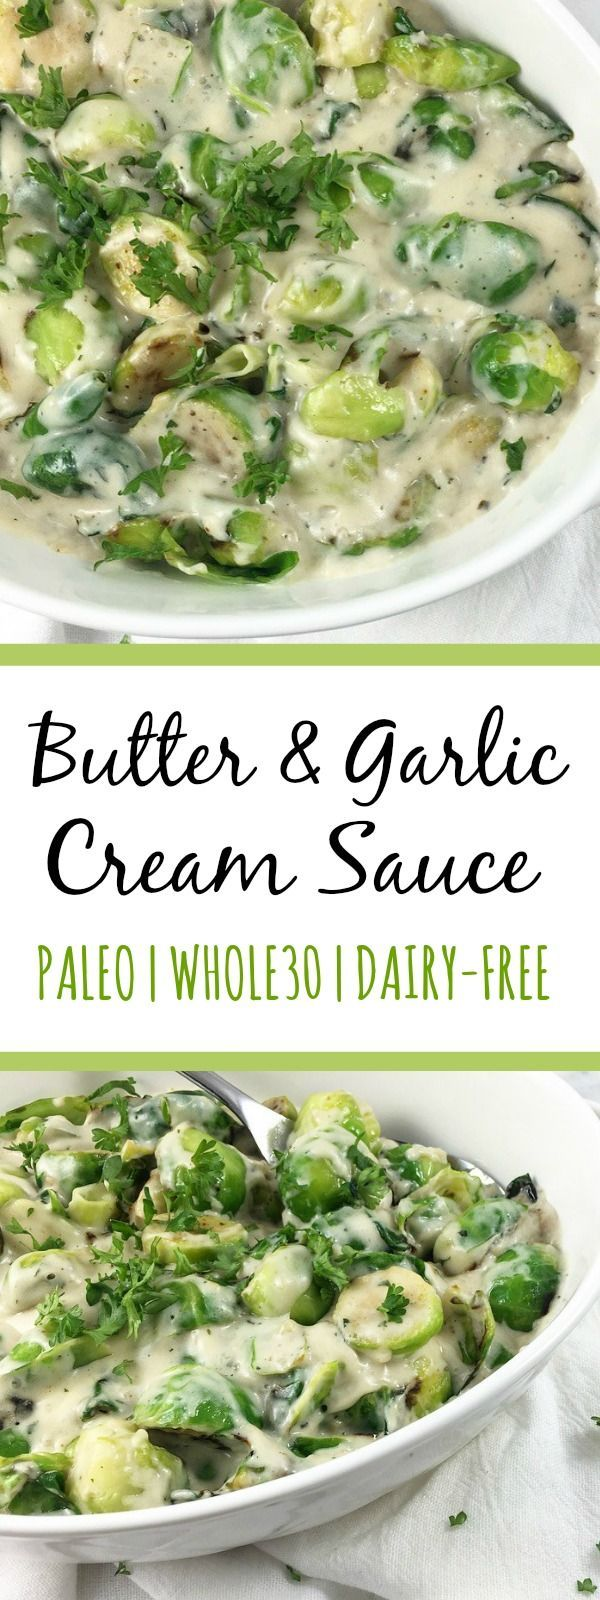 "This dairy free cream sauce has the best butter and garlic flavor for a variety of uses. It's a Whole30 sauce that can be used in paleo ""pasta"" meals, chicken recipes, creamed vegetable side dishes, the options are endless for this paleo sauce! #paleocreamsauce #whole30vegetables #whole30sauce #dairyfreecreamsauce"